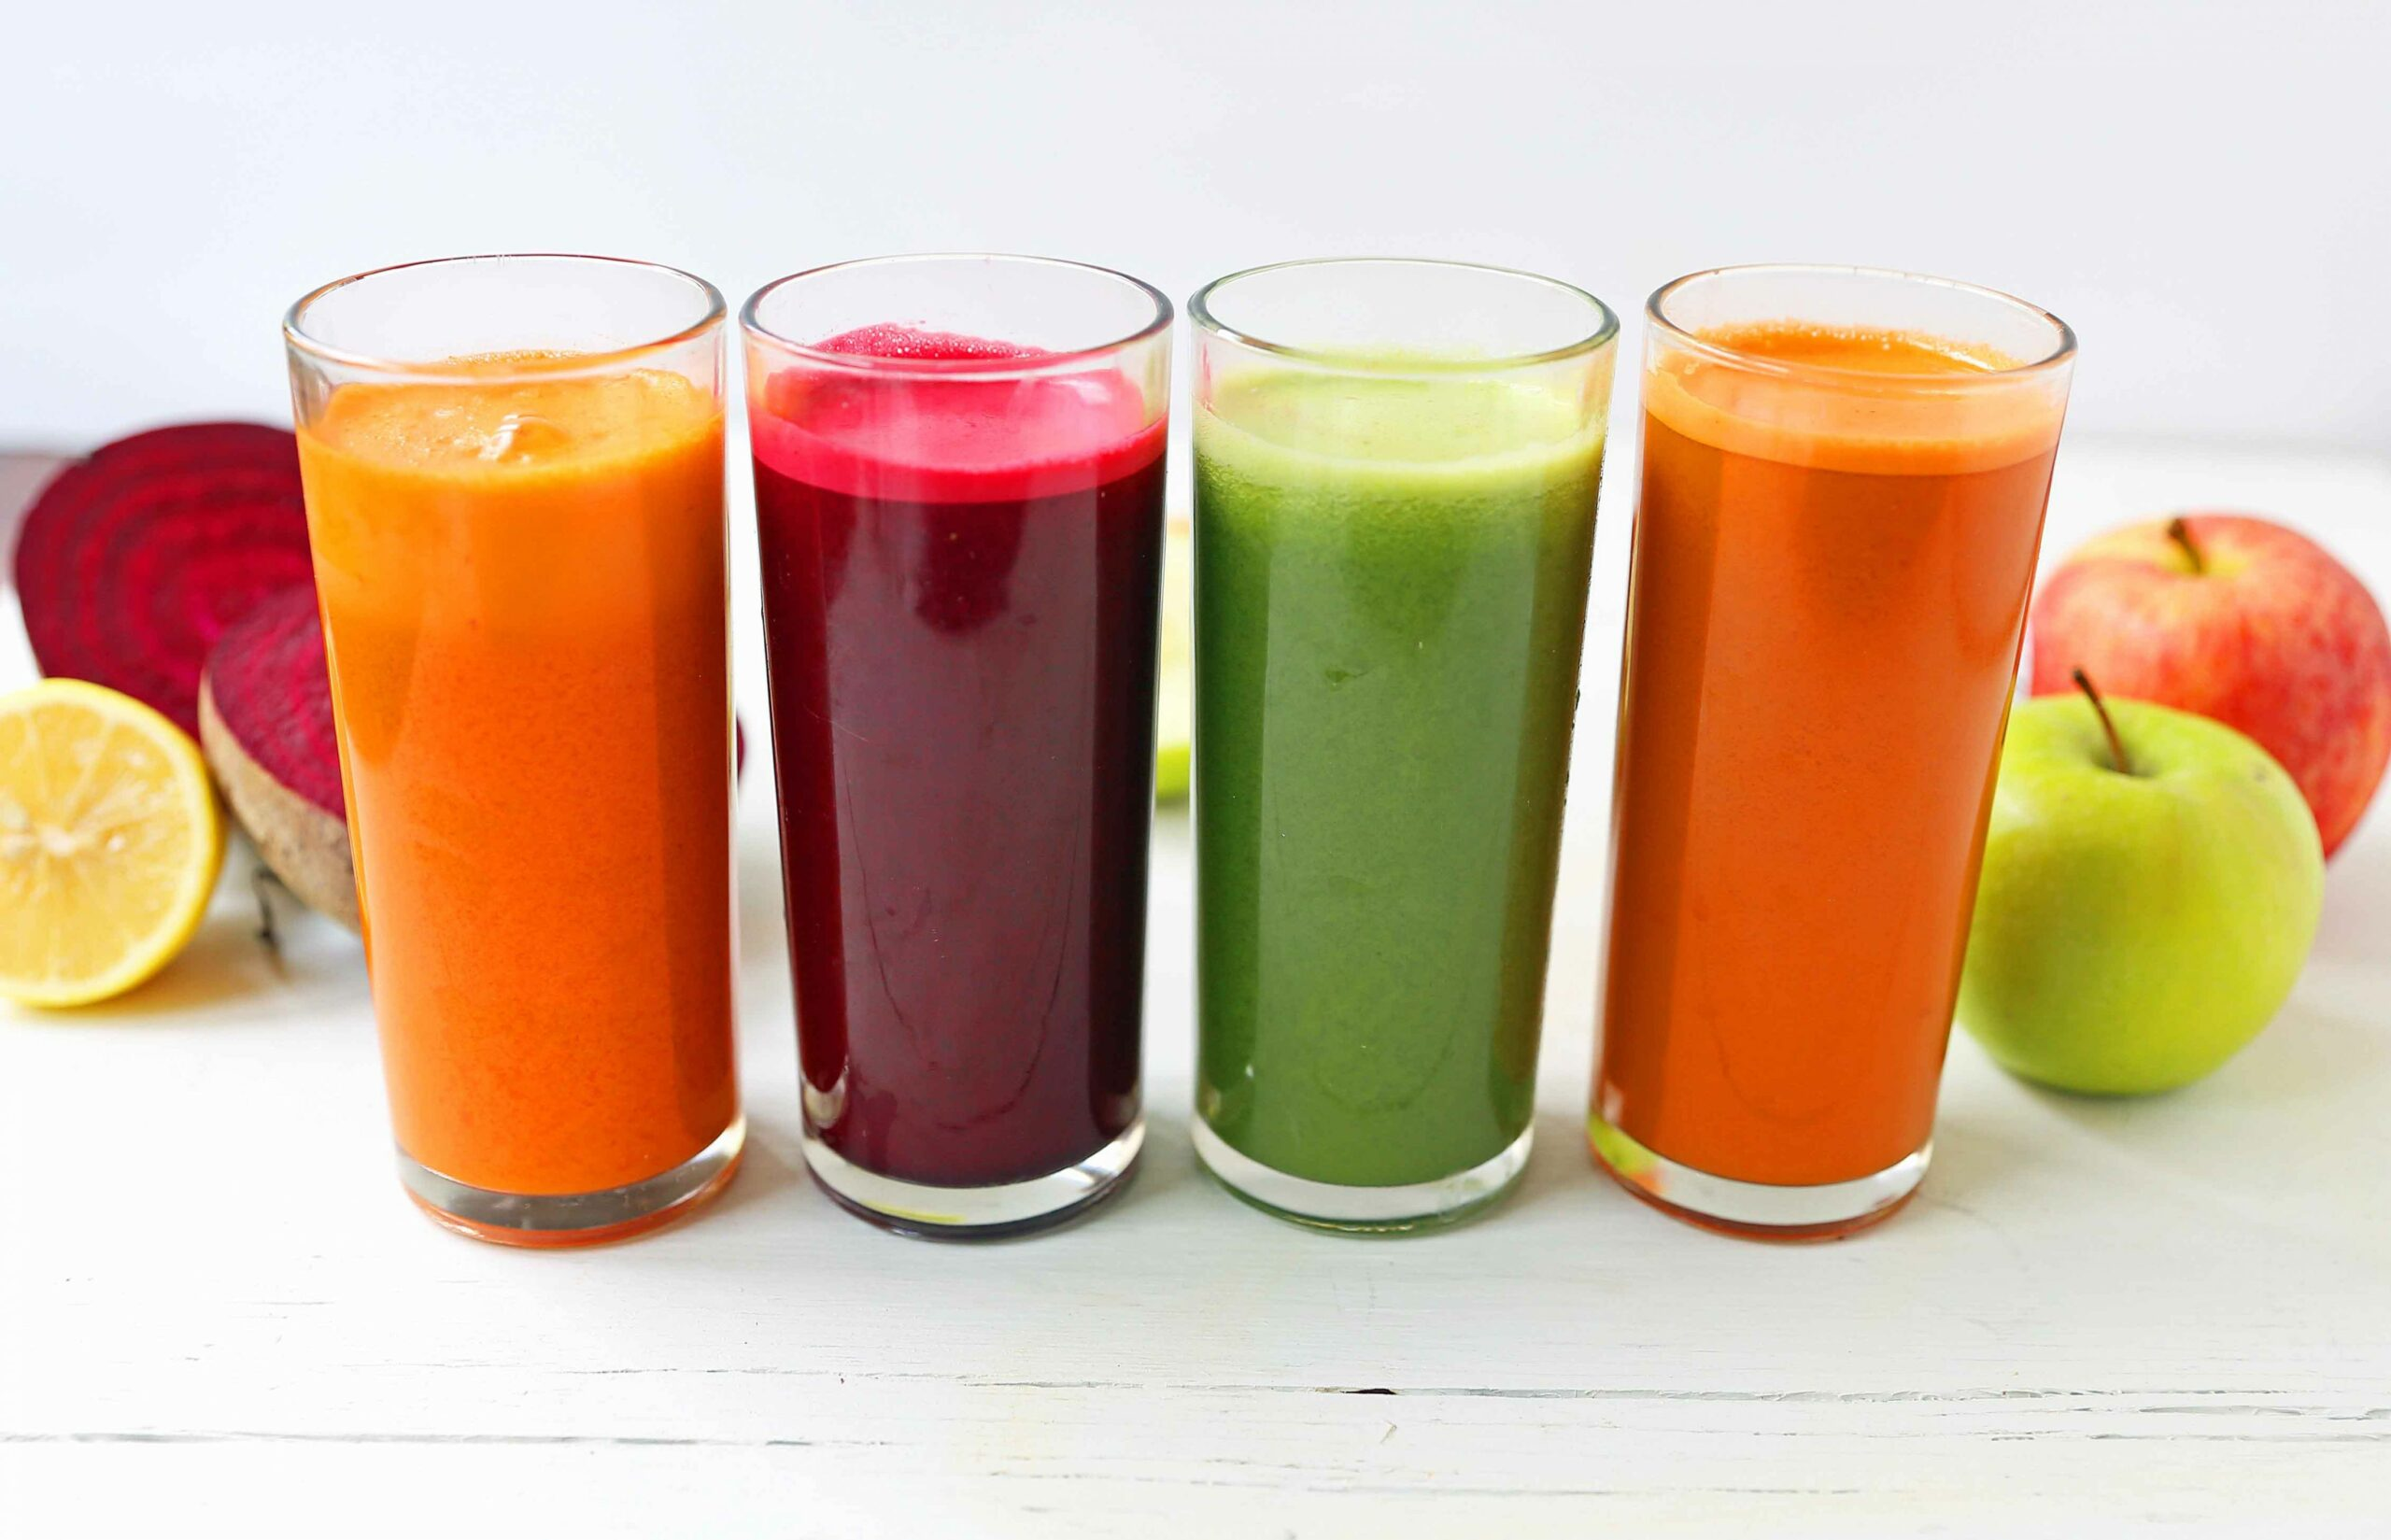 Healthy Juice Cleanse Recipes - Recipes For Vegetable Juices To Detox